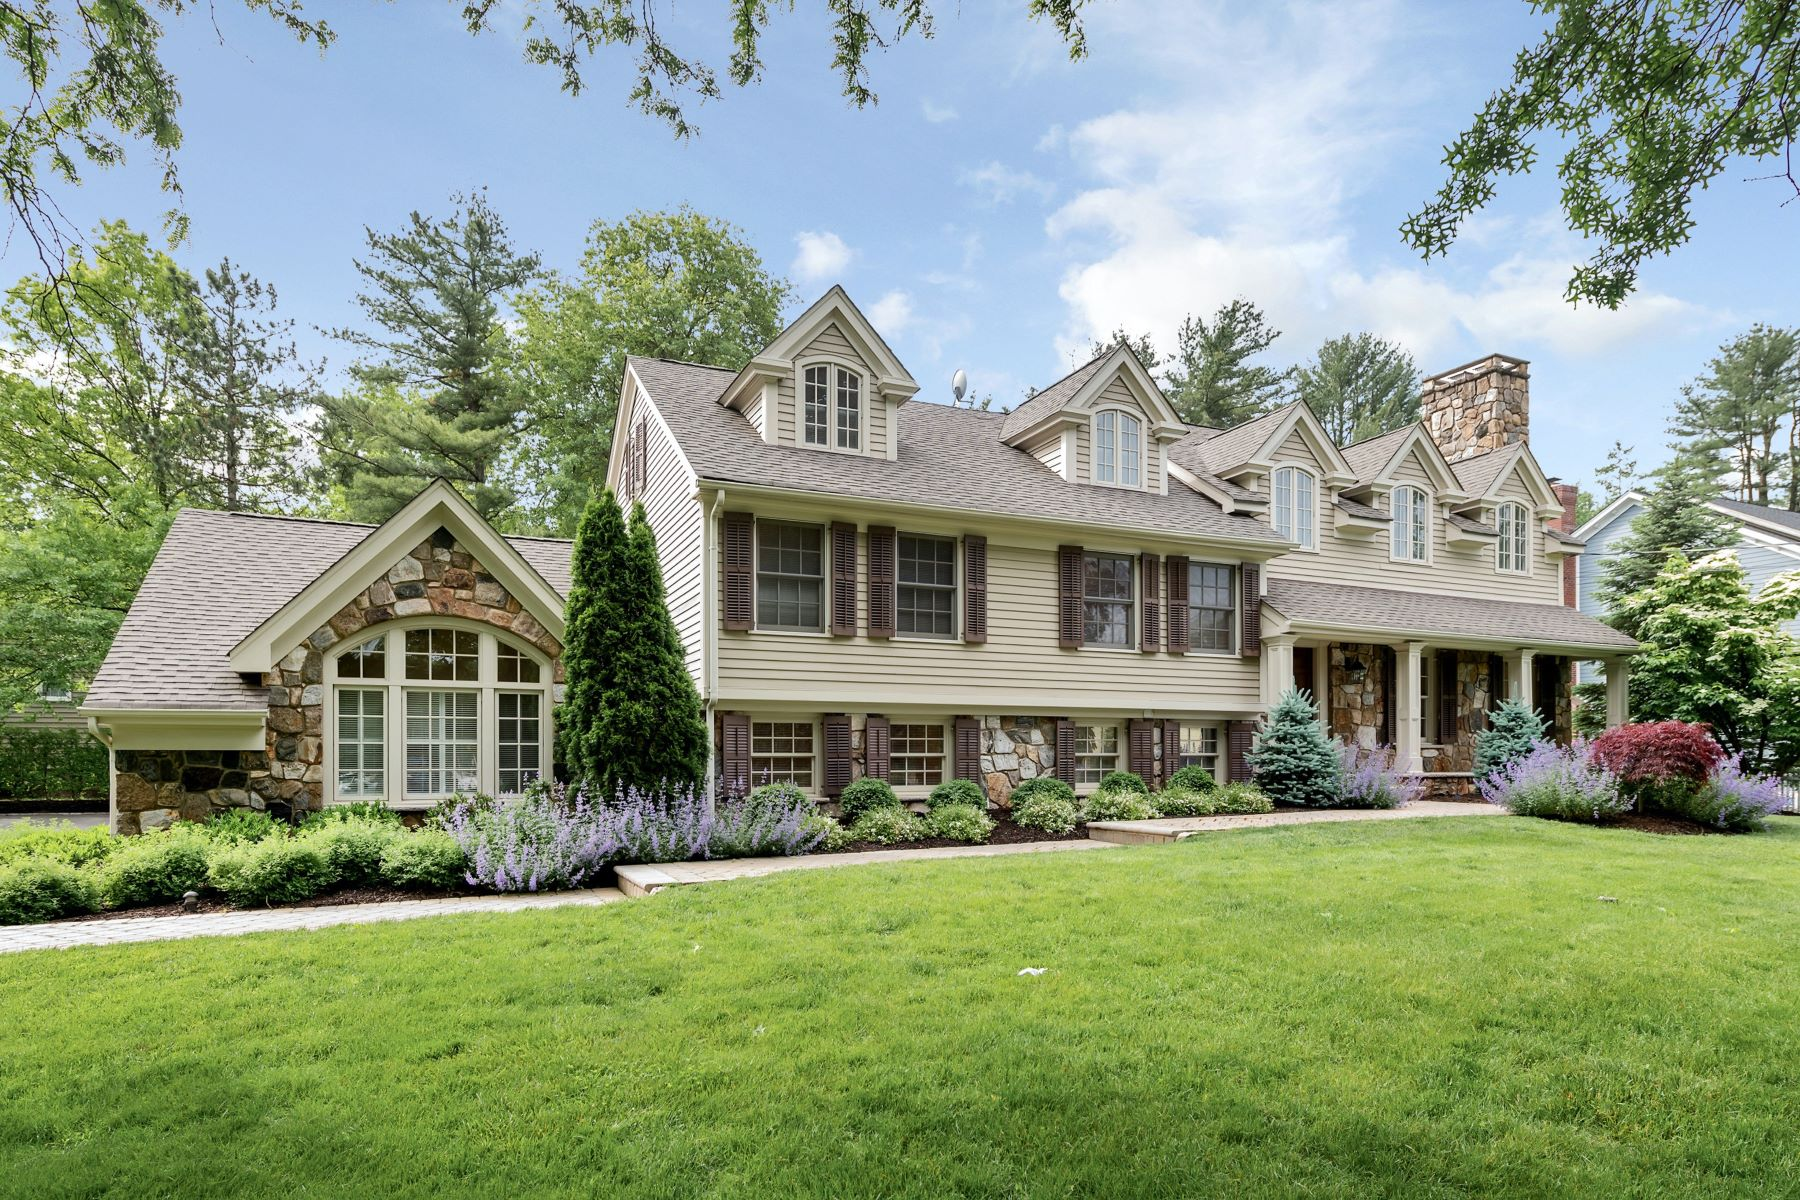 Single Family Homes for Sale at Custom Home 100 Noe Avenue Chatham Township, New Jersey 07928 United States